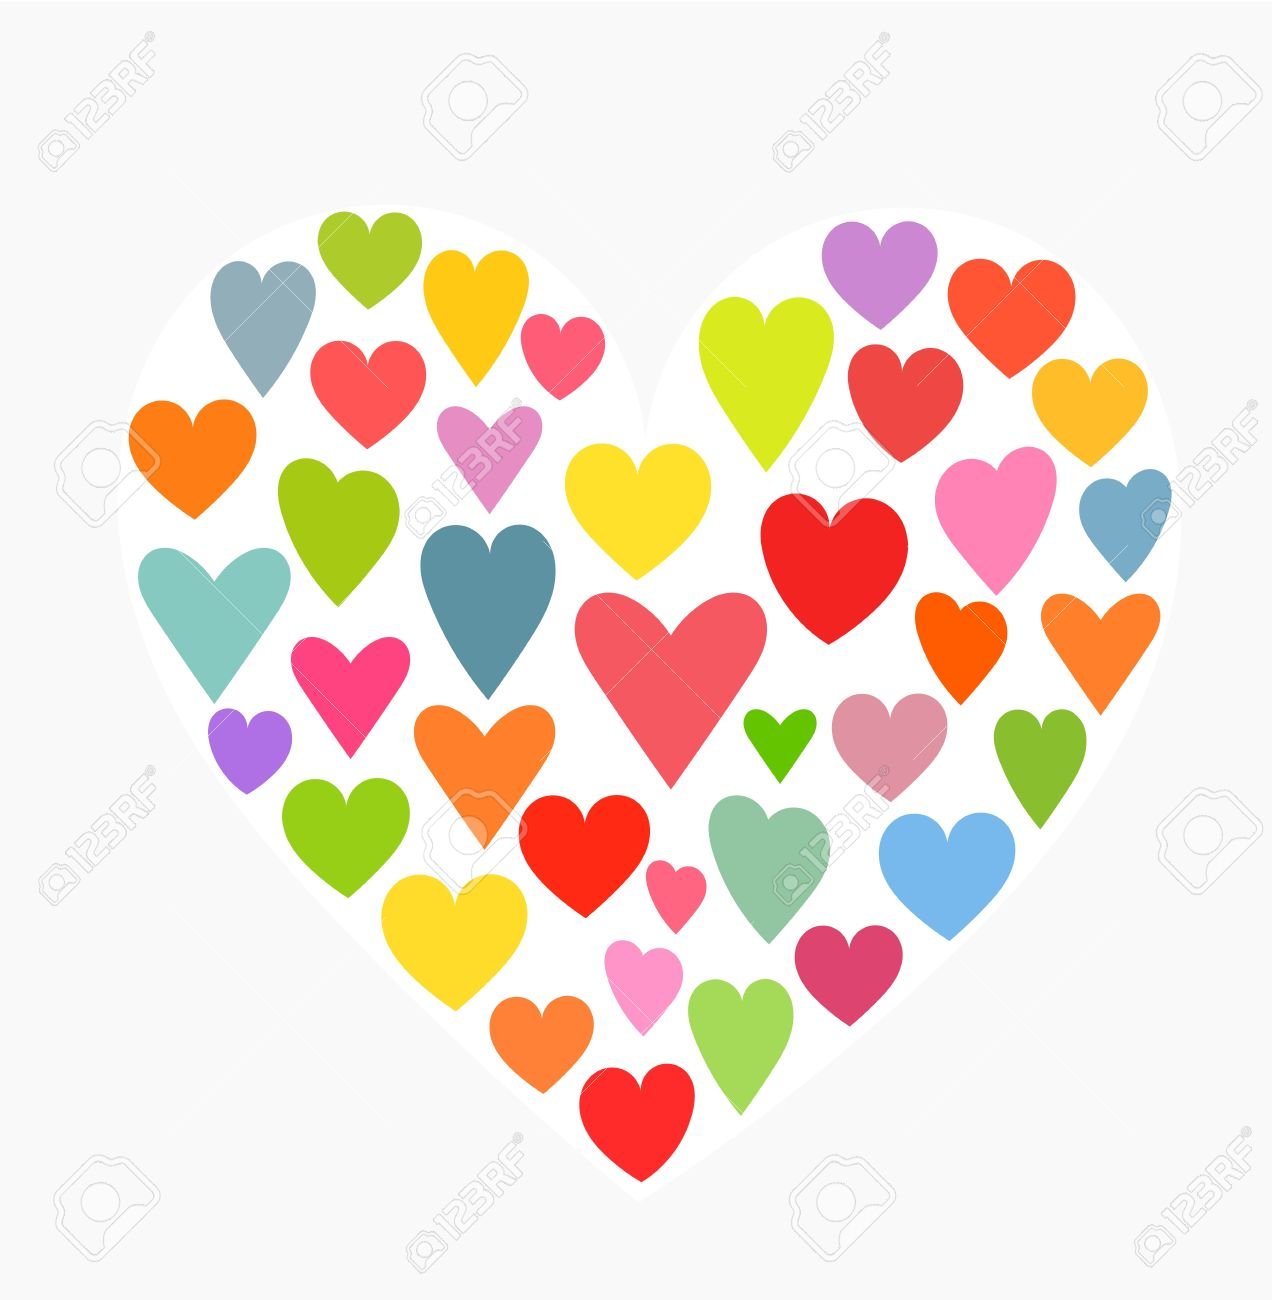 Heart Made Of Little Colorful Hearts. Vector Illustration Royalty ...